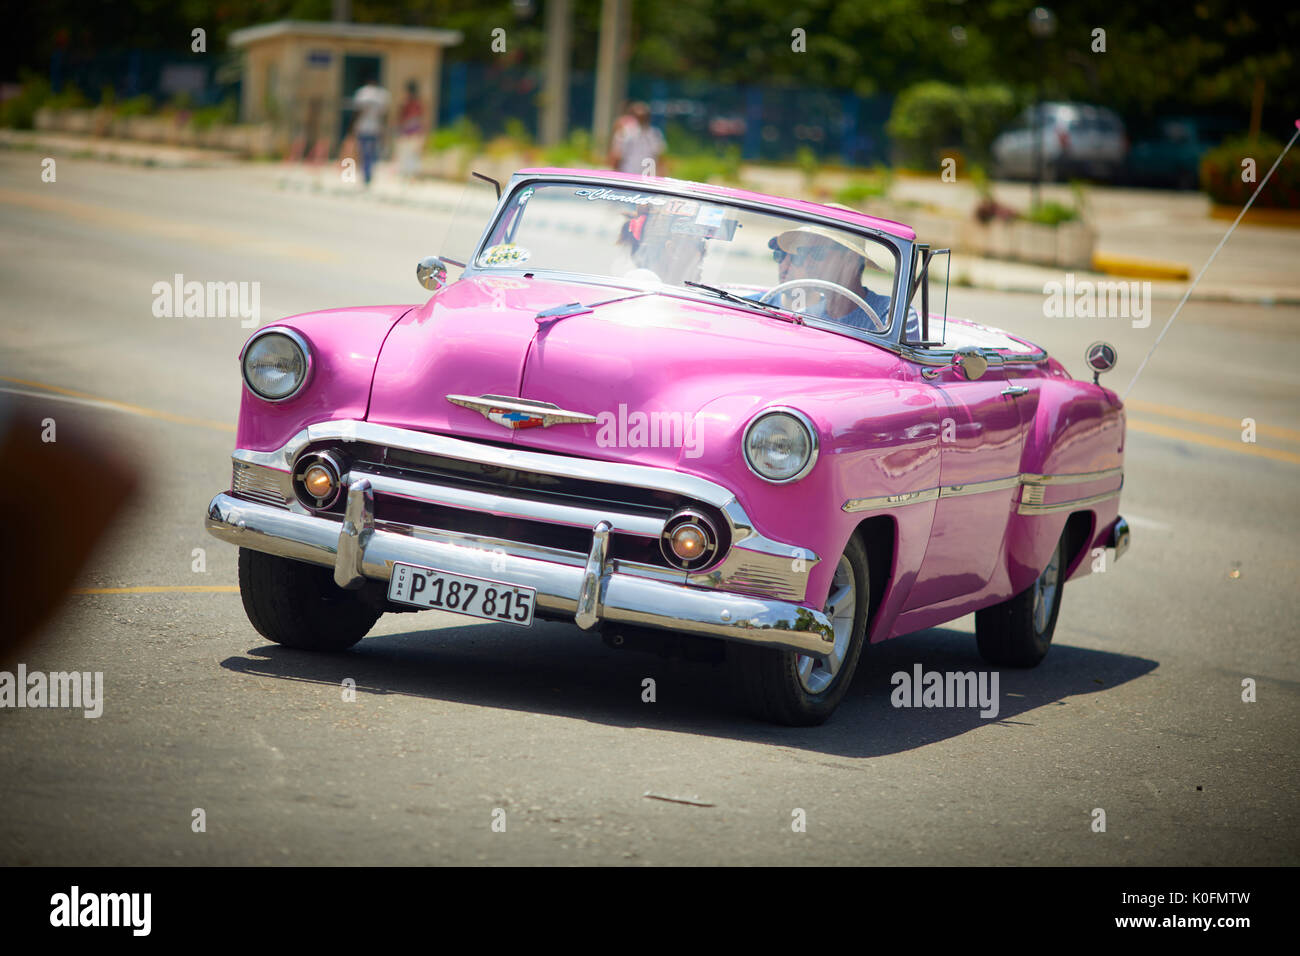 Pink Convertible High Resolution Stock Photography And Images Alamy